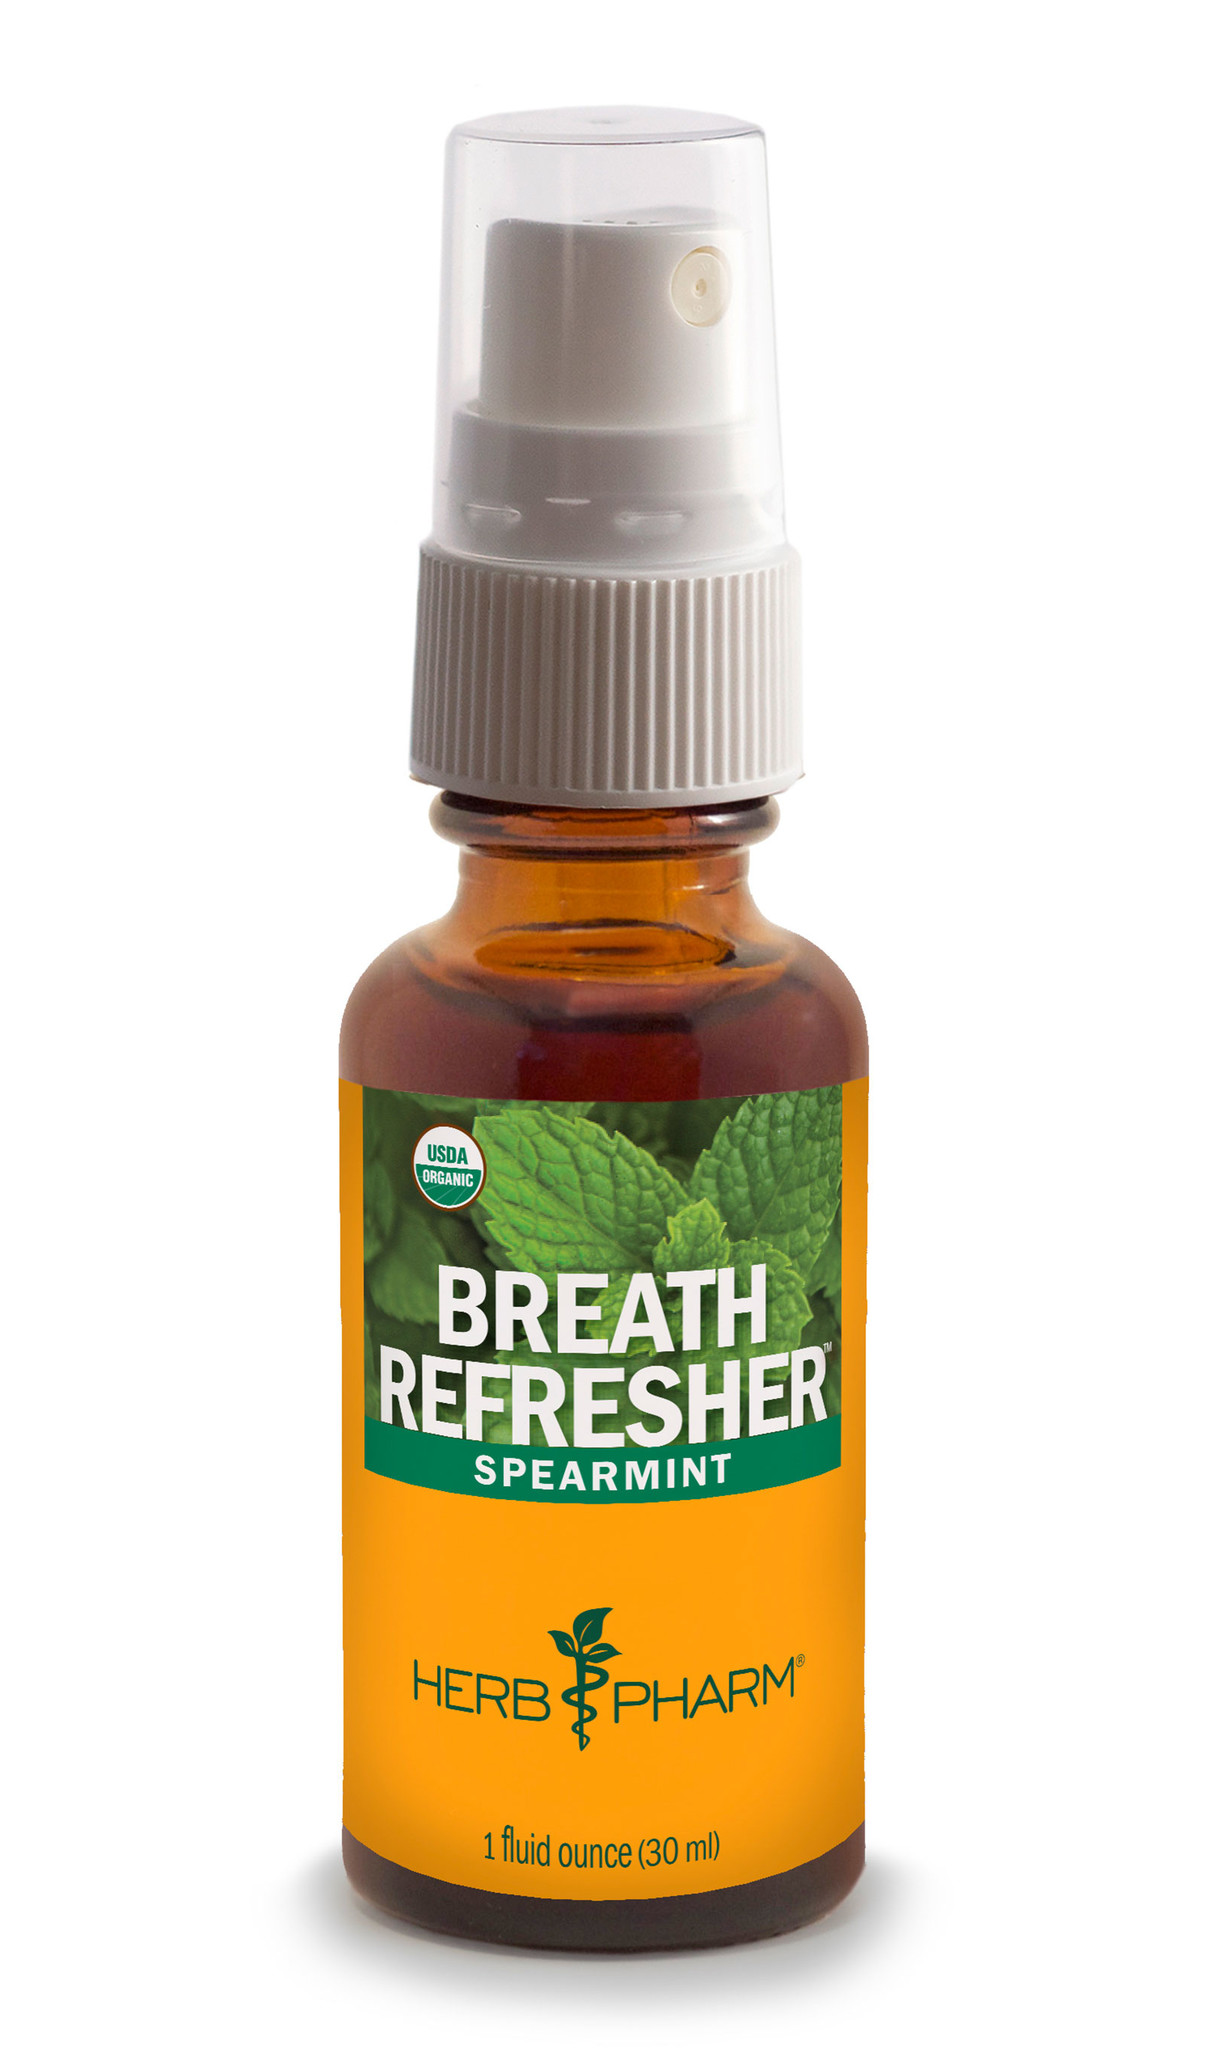 BREATH REFRESHER SPEARMINT-1